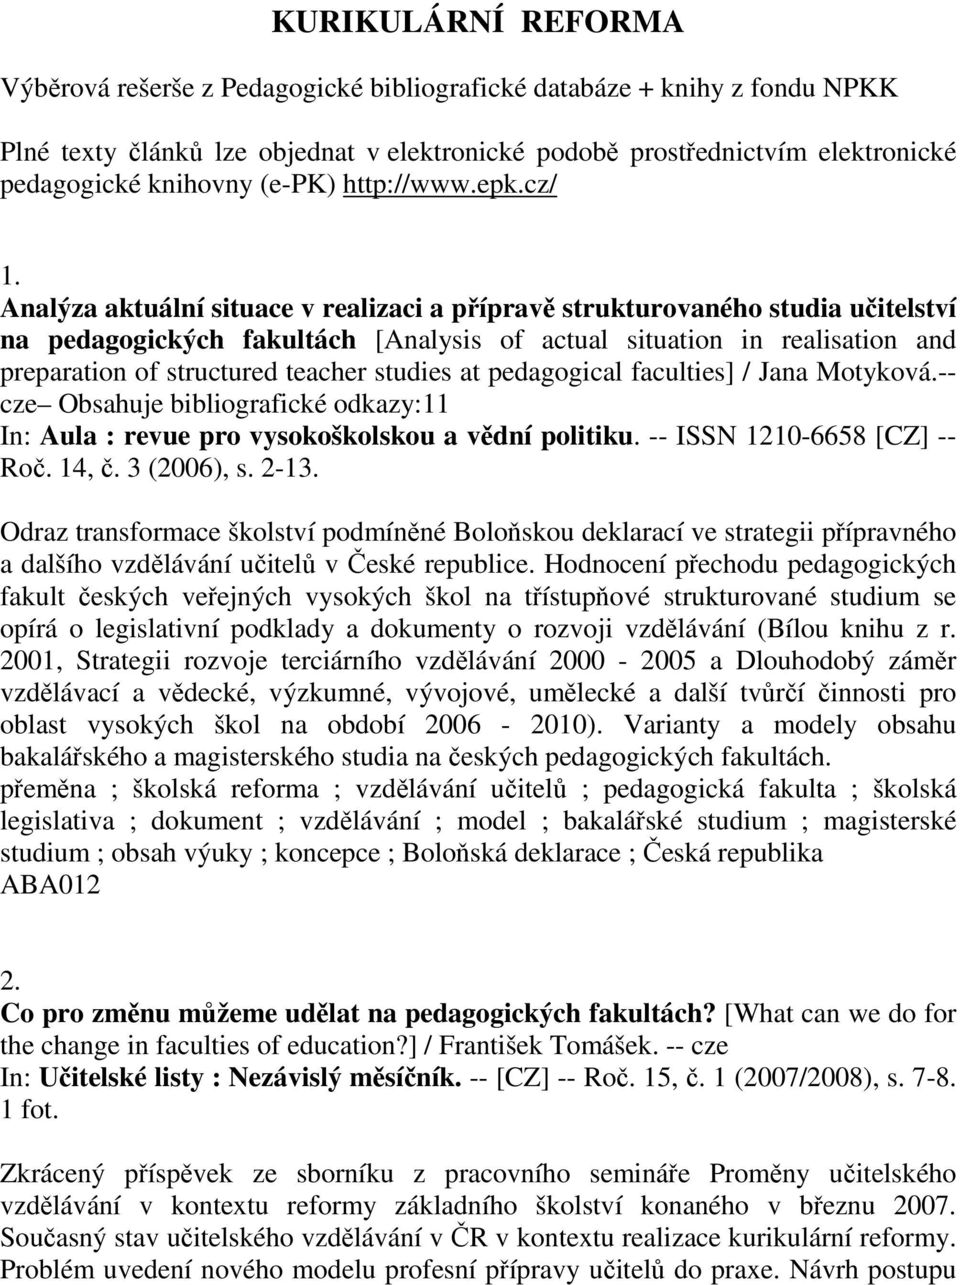 Analýza aktuální situace v realizaci a přípravě strukturovaného studia učitelství na pedagogických fakultách [Analysis of actual situation in realisation and preparation of structured teacher studies